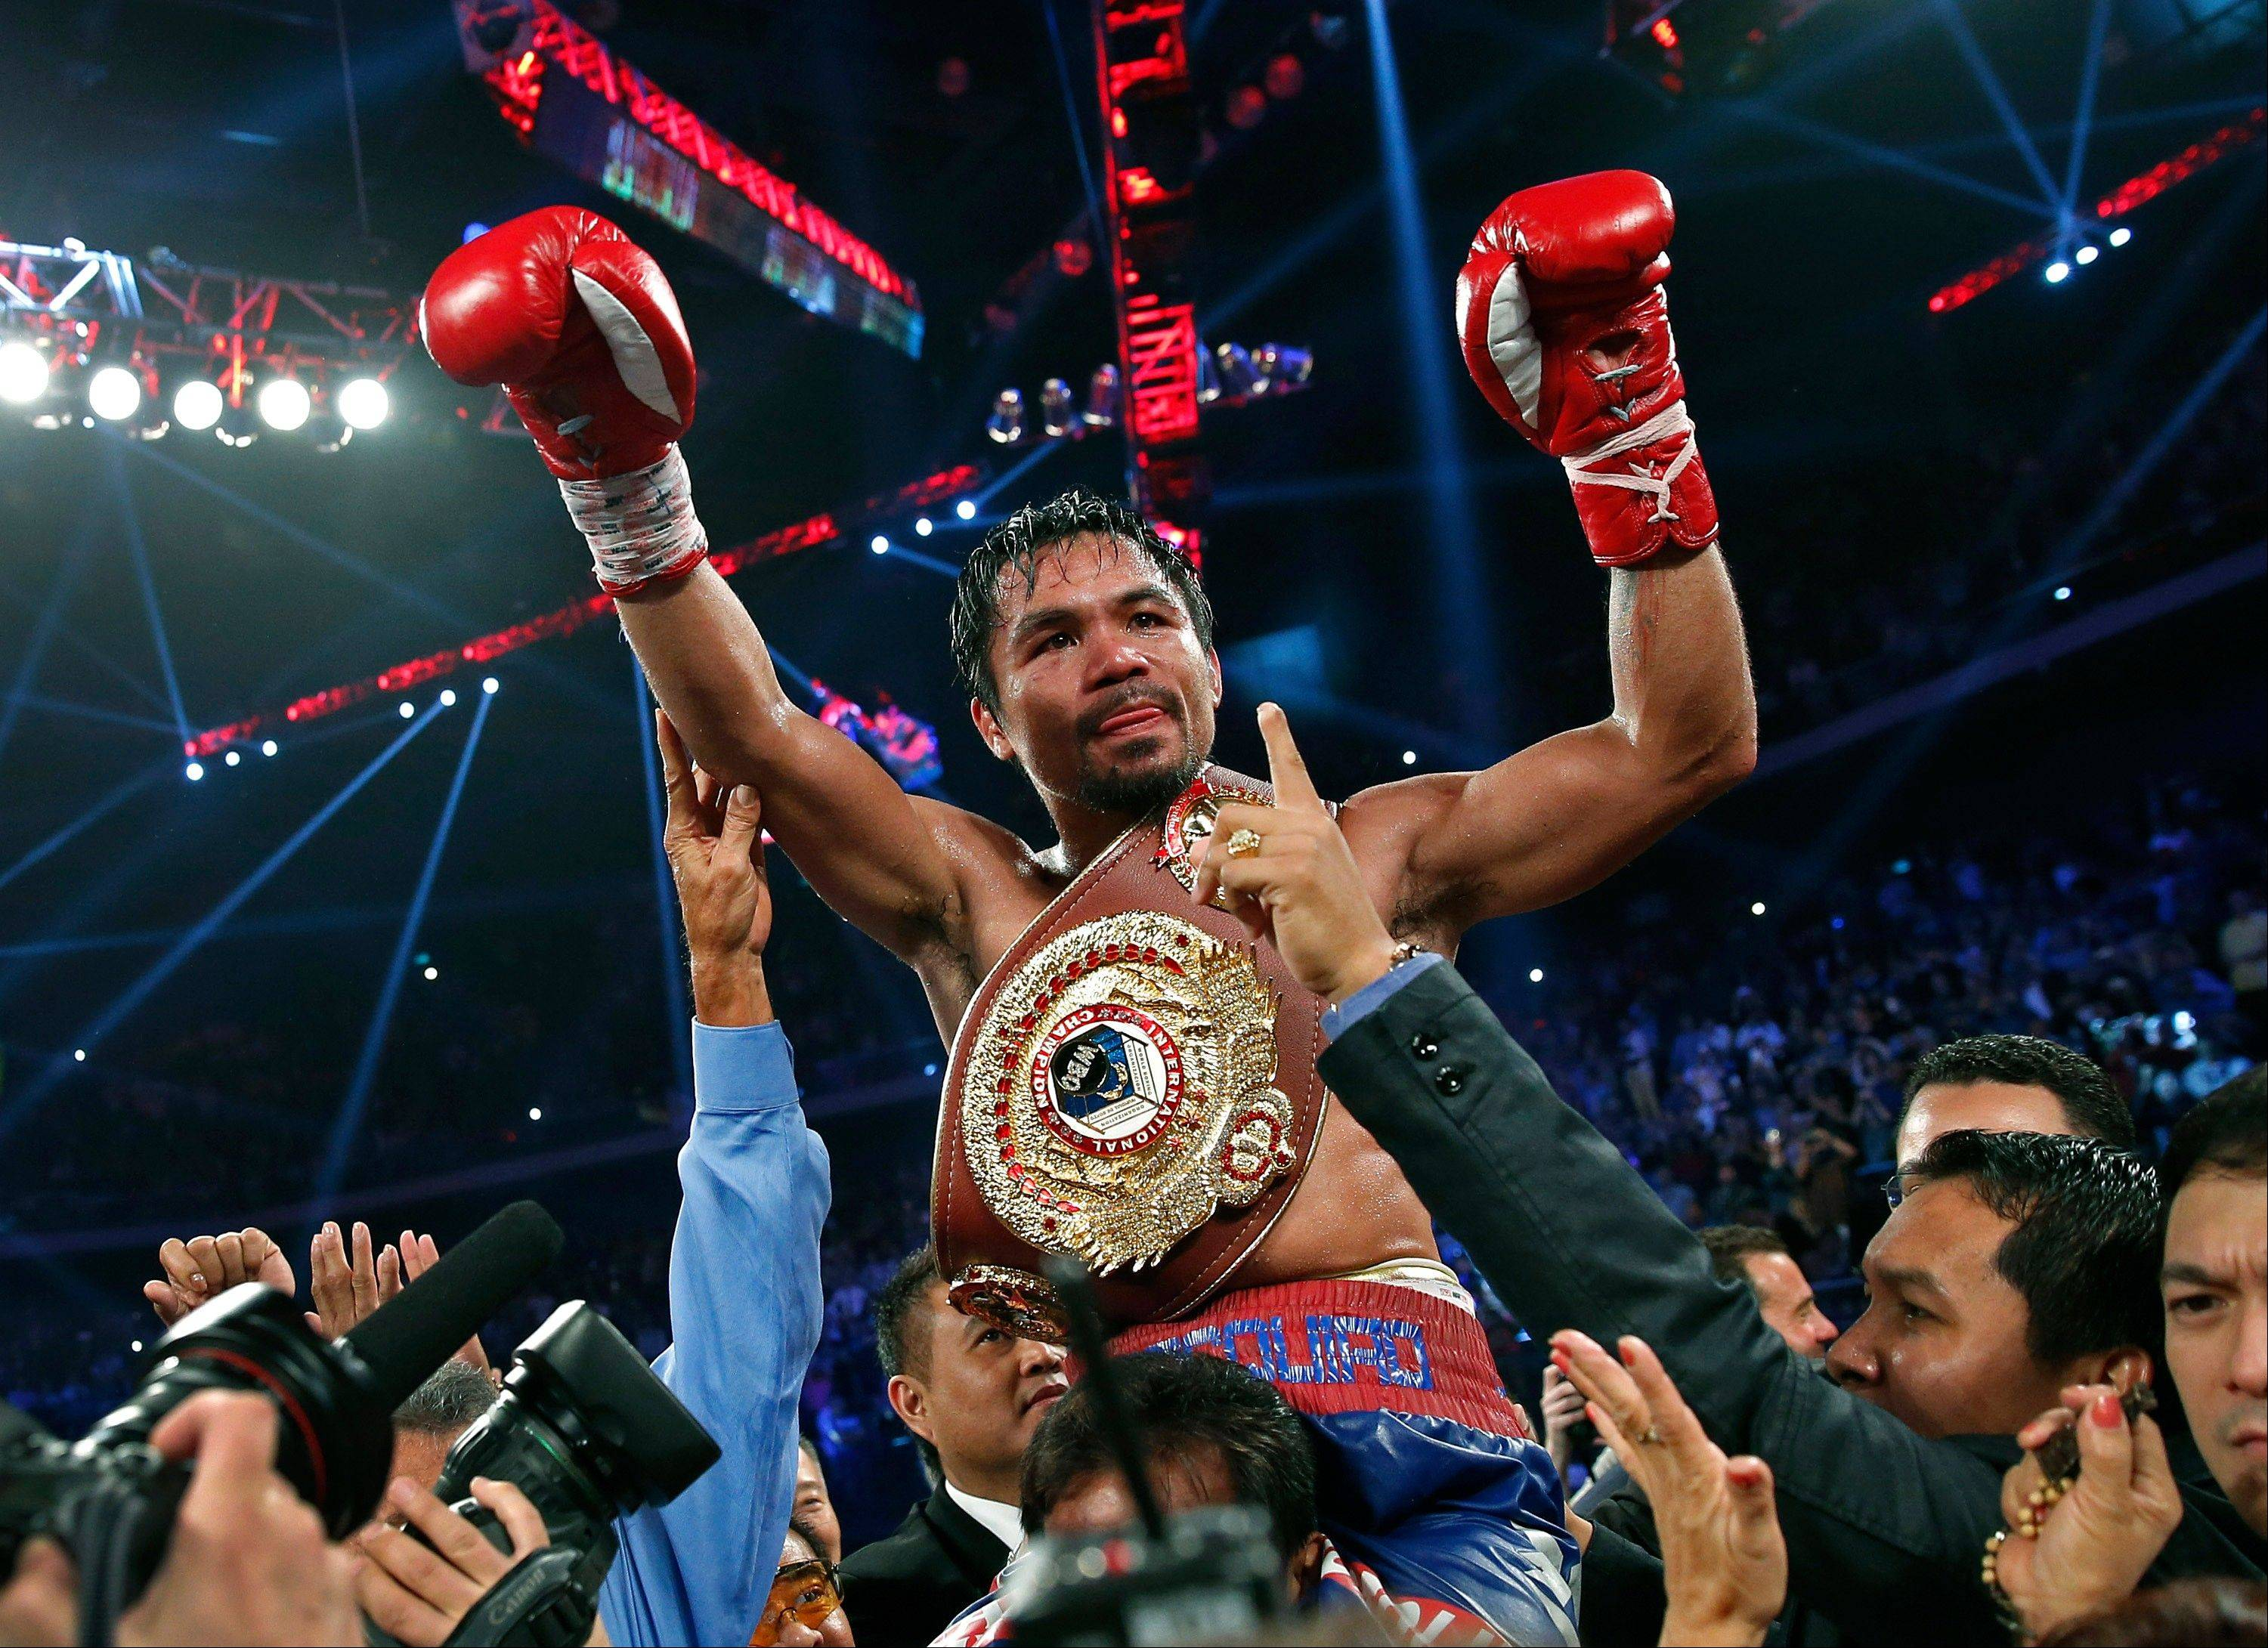 Manny Pacquiao wears the champion's belt after defeating Brandon Rios in their WBO international welterweight title fight on Sunday in Macau.